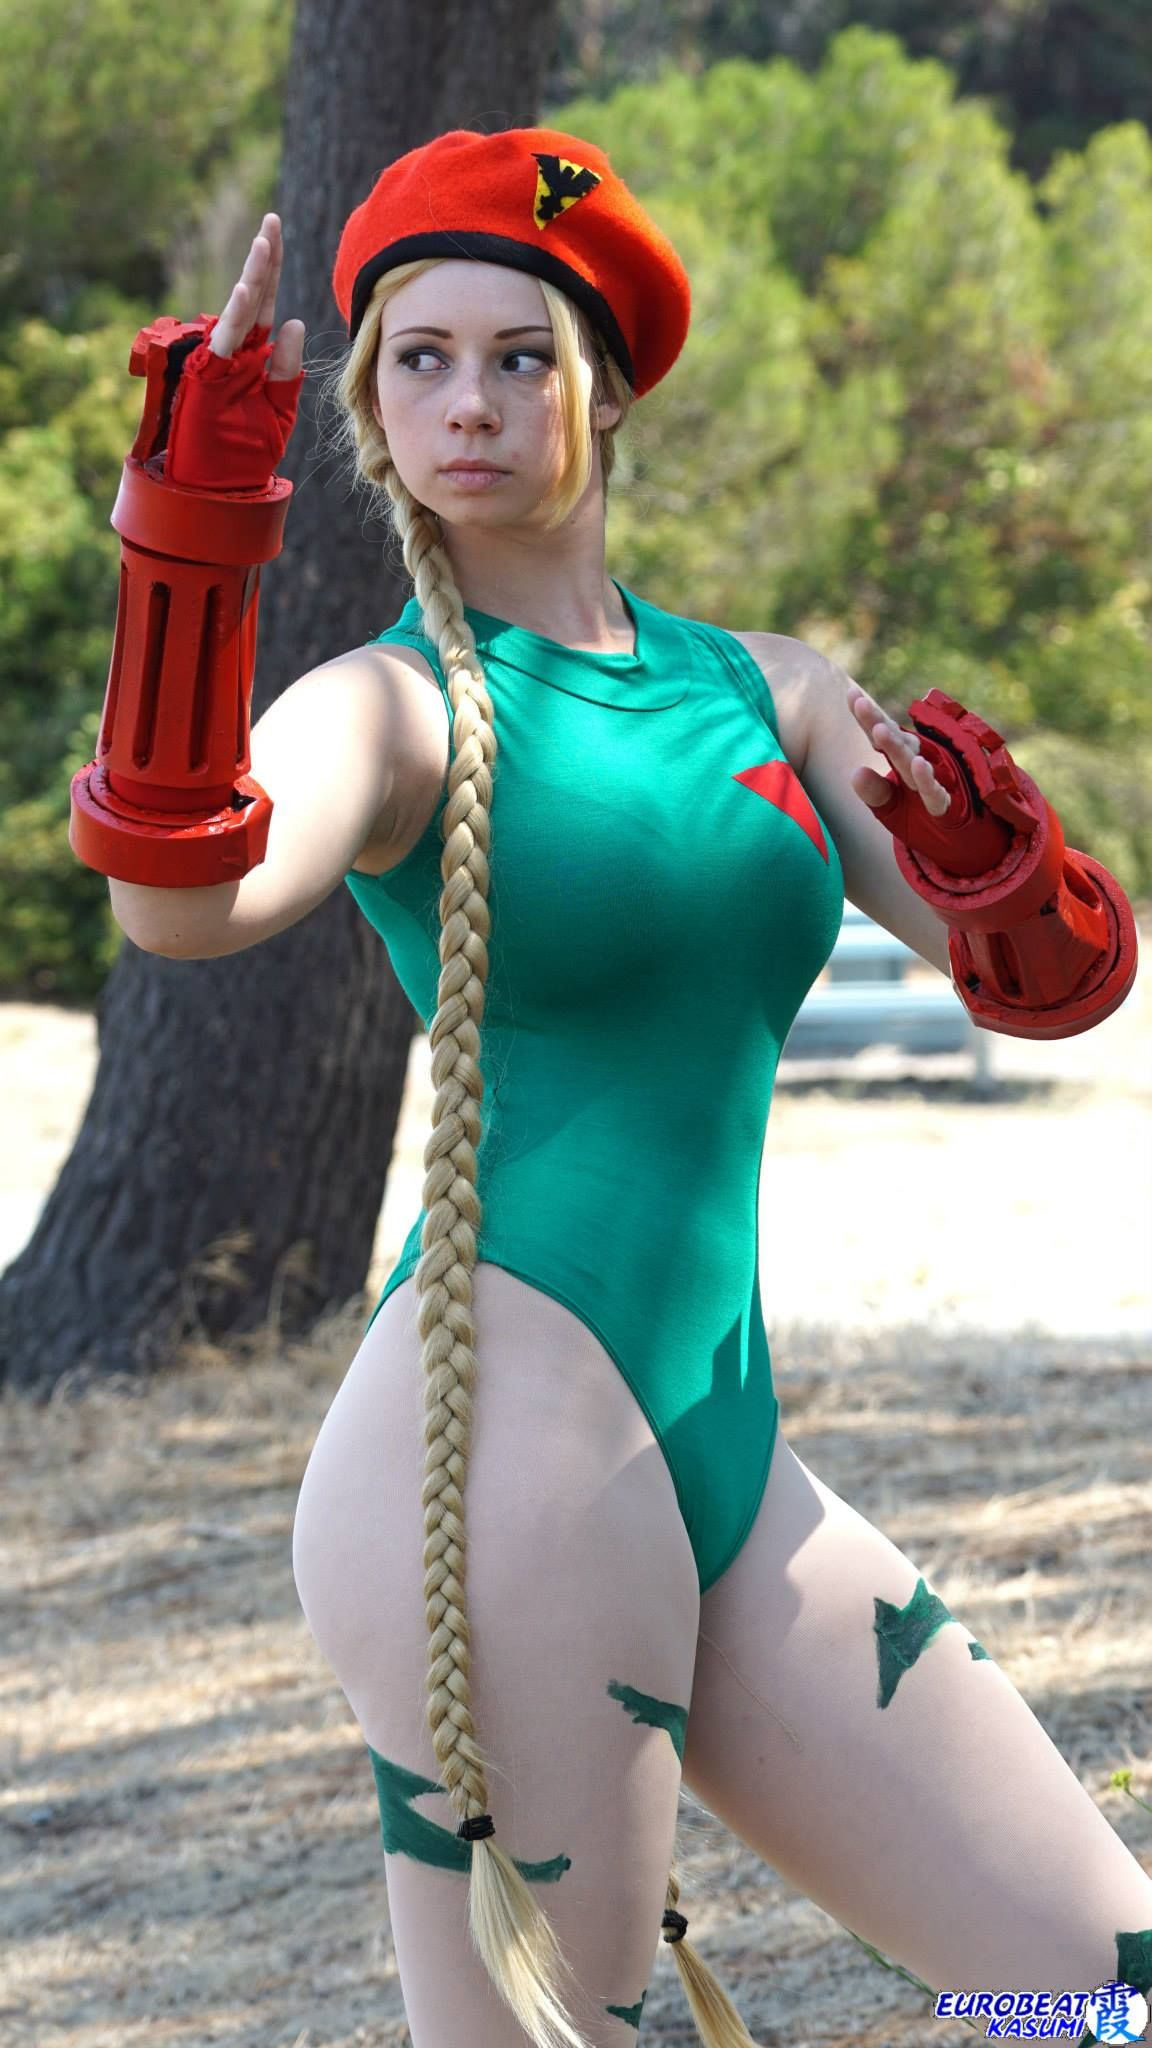 Pity, street fighter cammy cosplay naked are